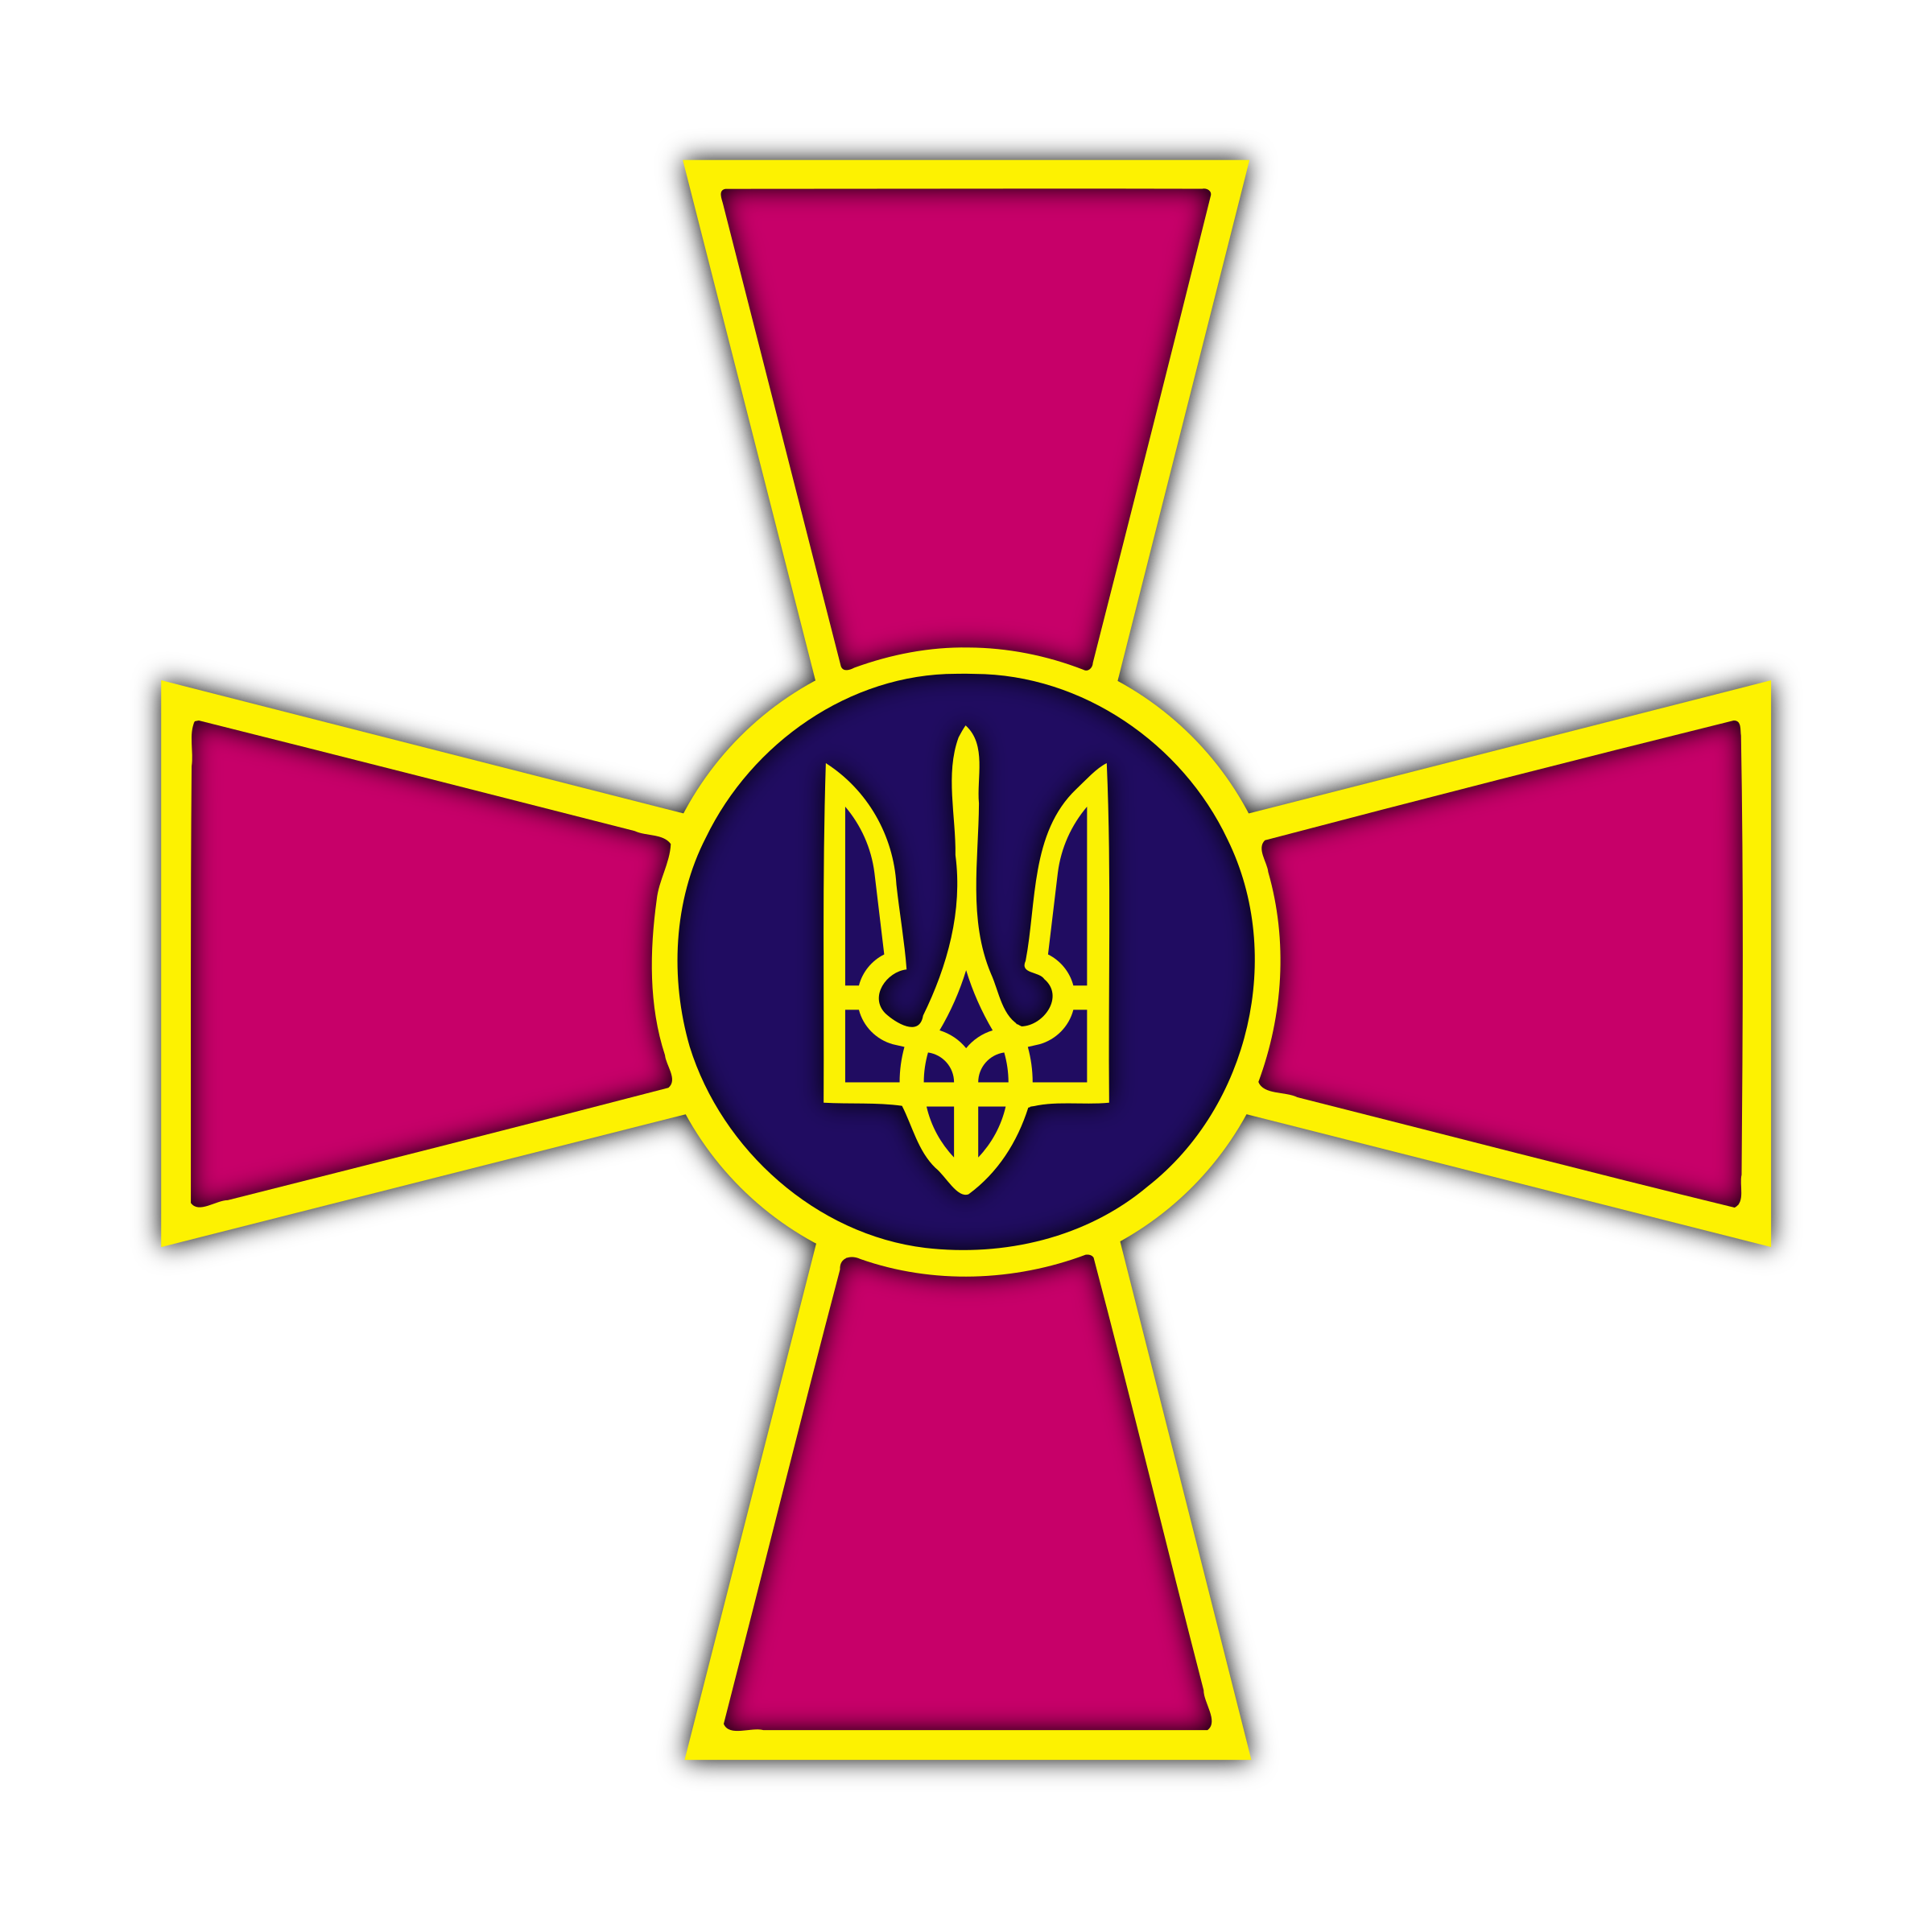 Emblem of the Armed Forces of Ukraine by grin